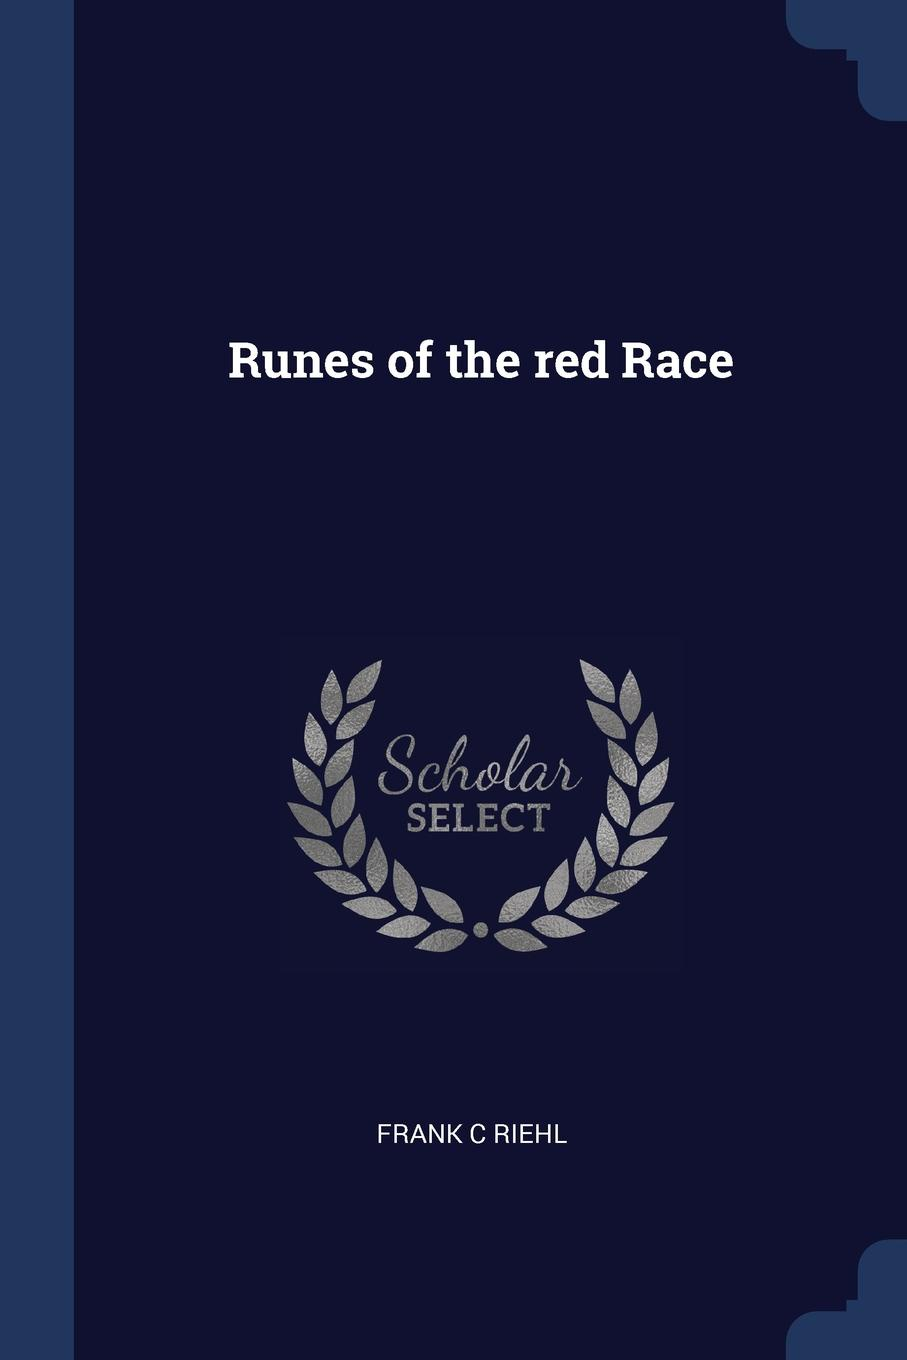 Runes of the red Race. Frank C Riehl